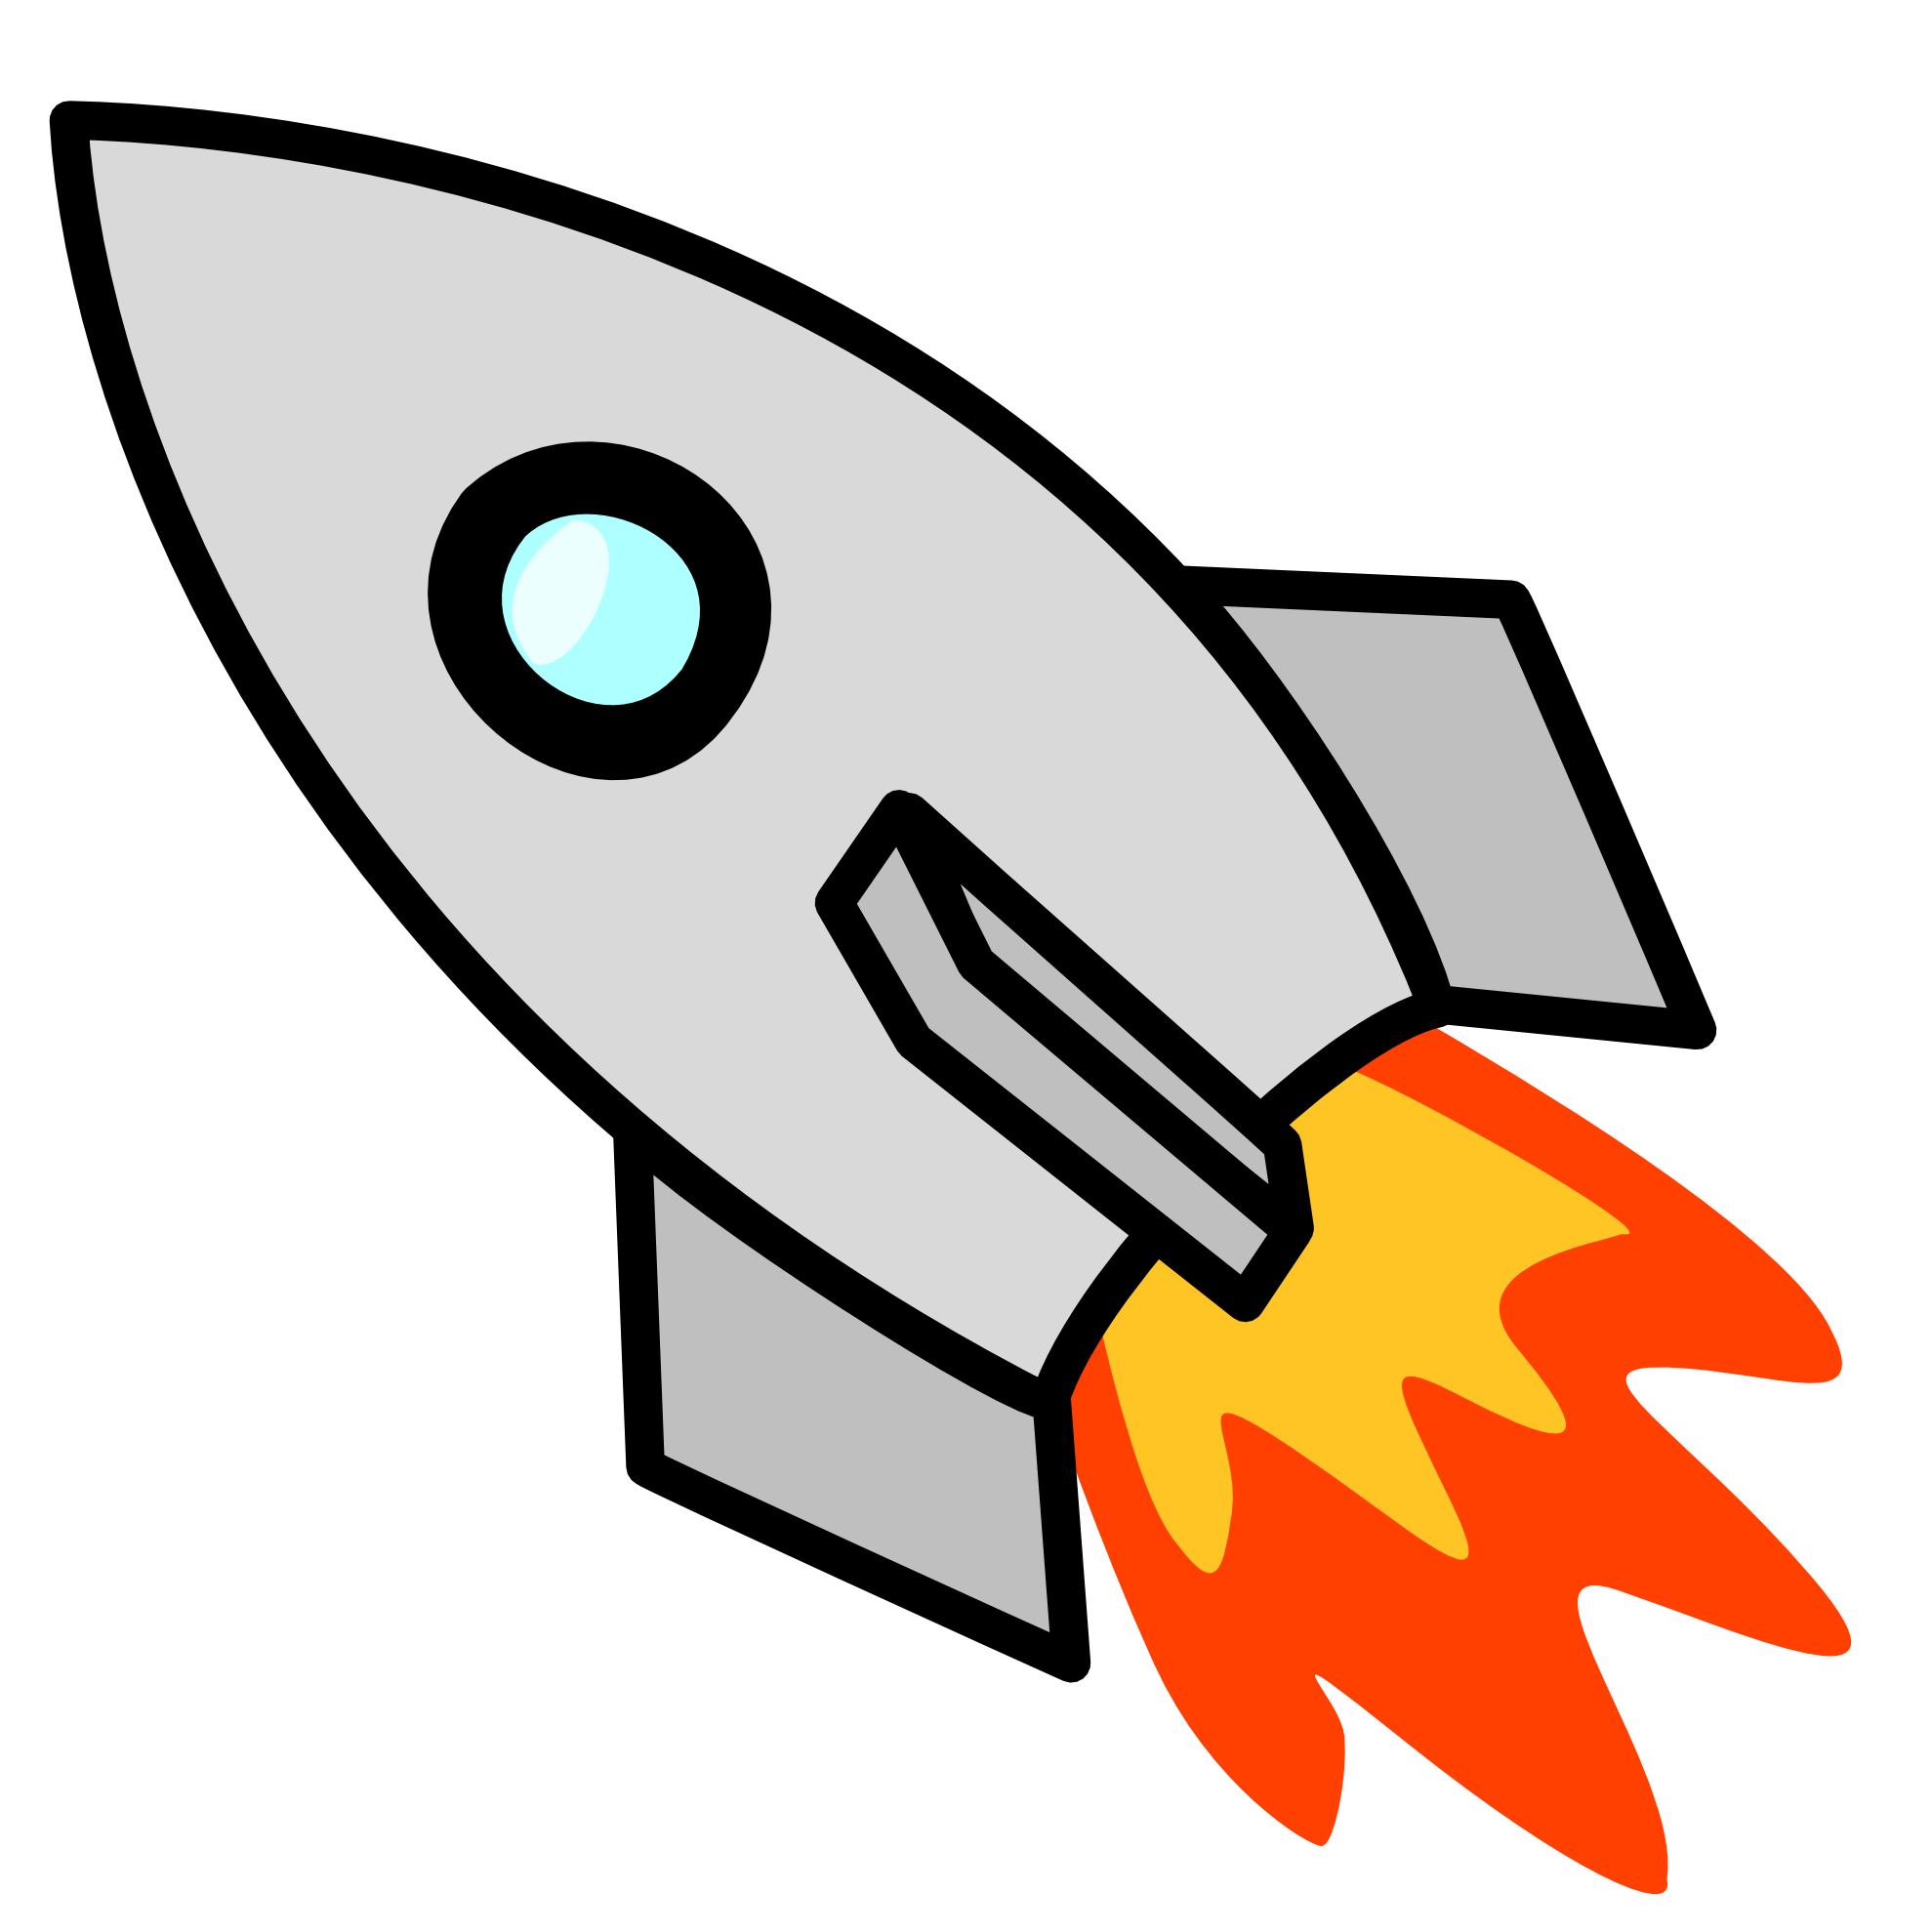 Rocket clipart black and white free images 2